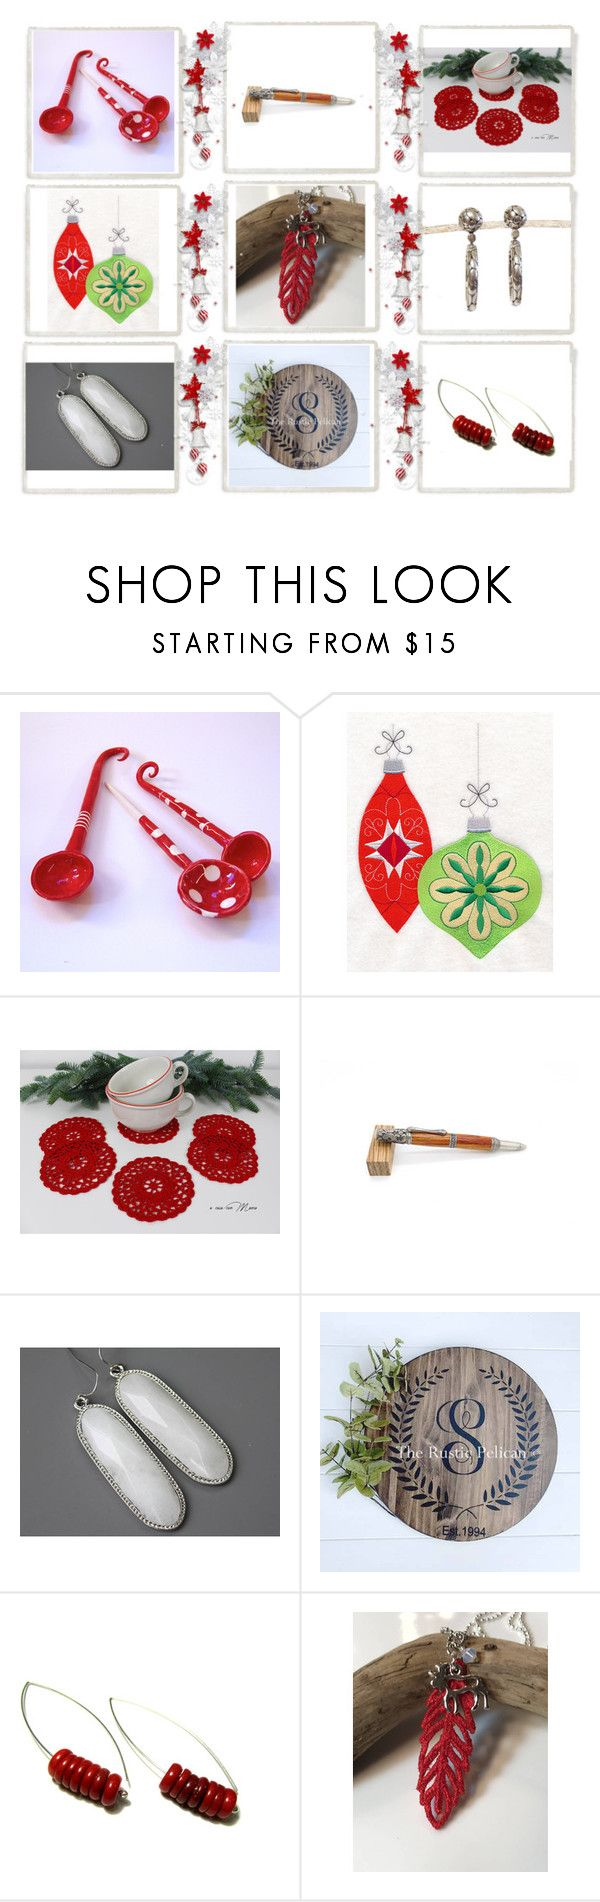 """Lovely gifts!"" by keepsakedesignbycmm on Polyvore featuring Hostess, John Hardy, jewelry, accessories and decor"